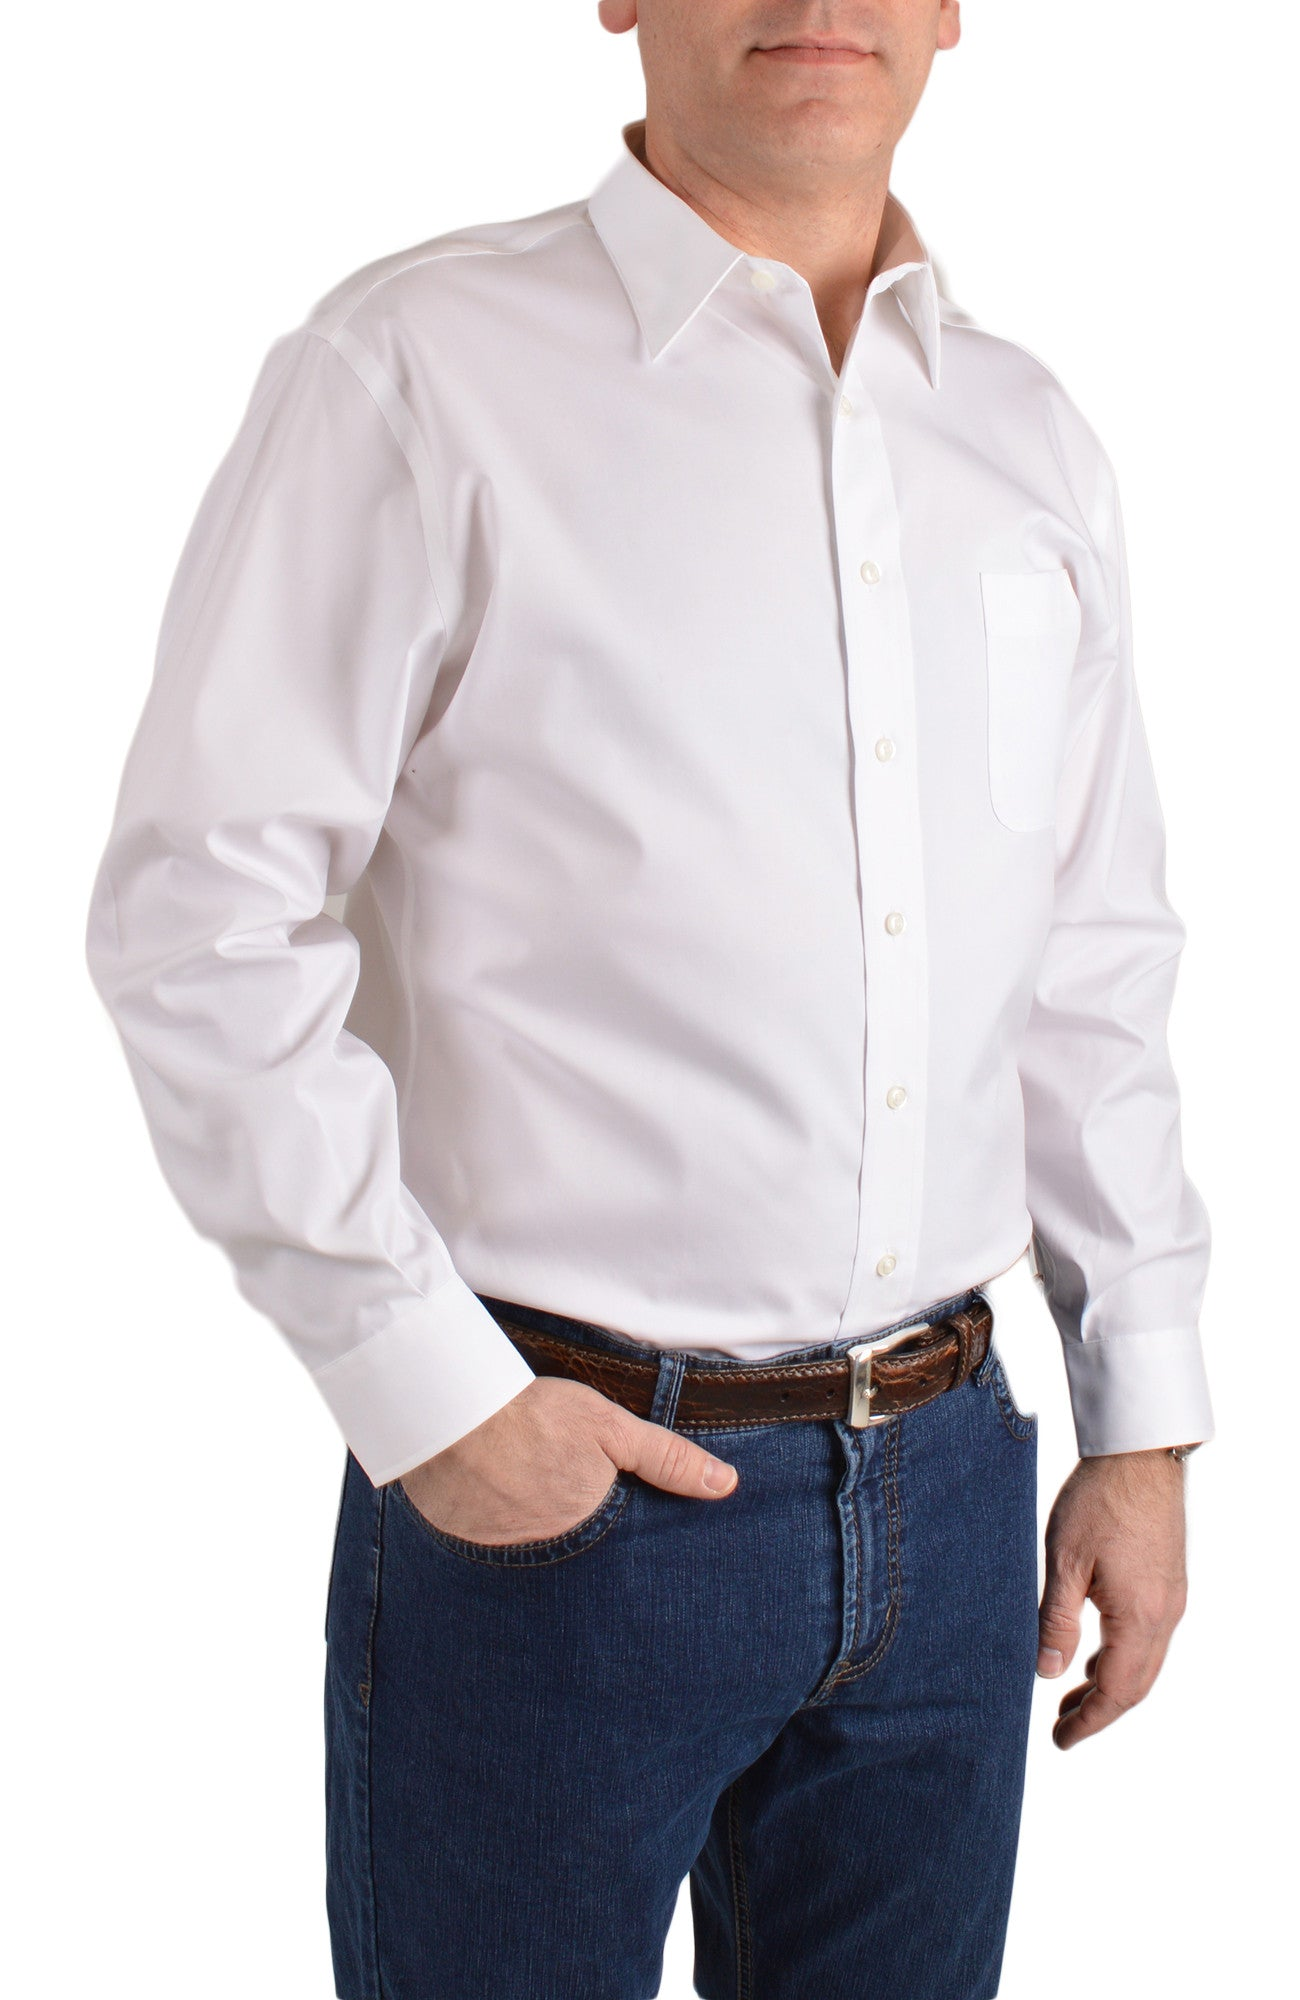 mens white casual button shirt